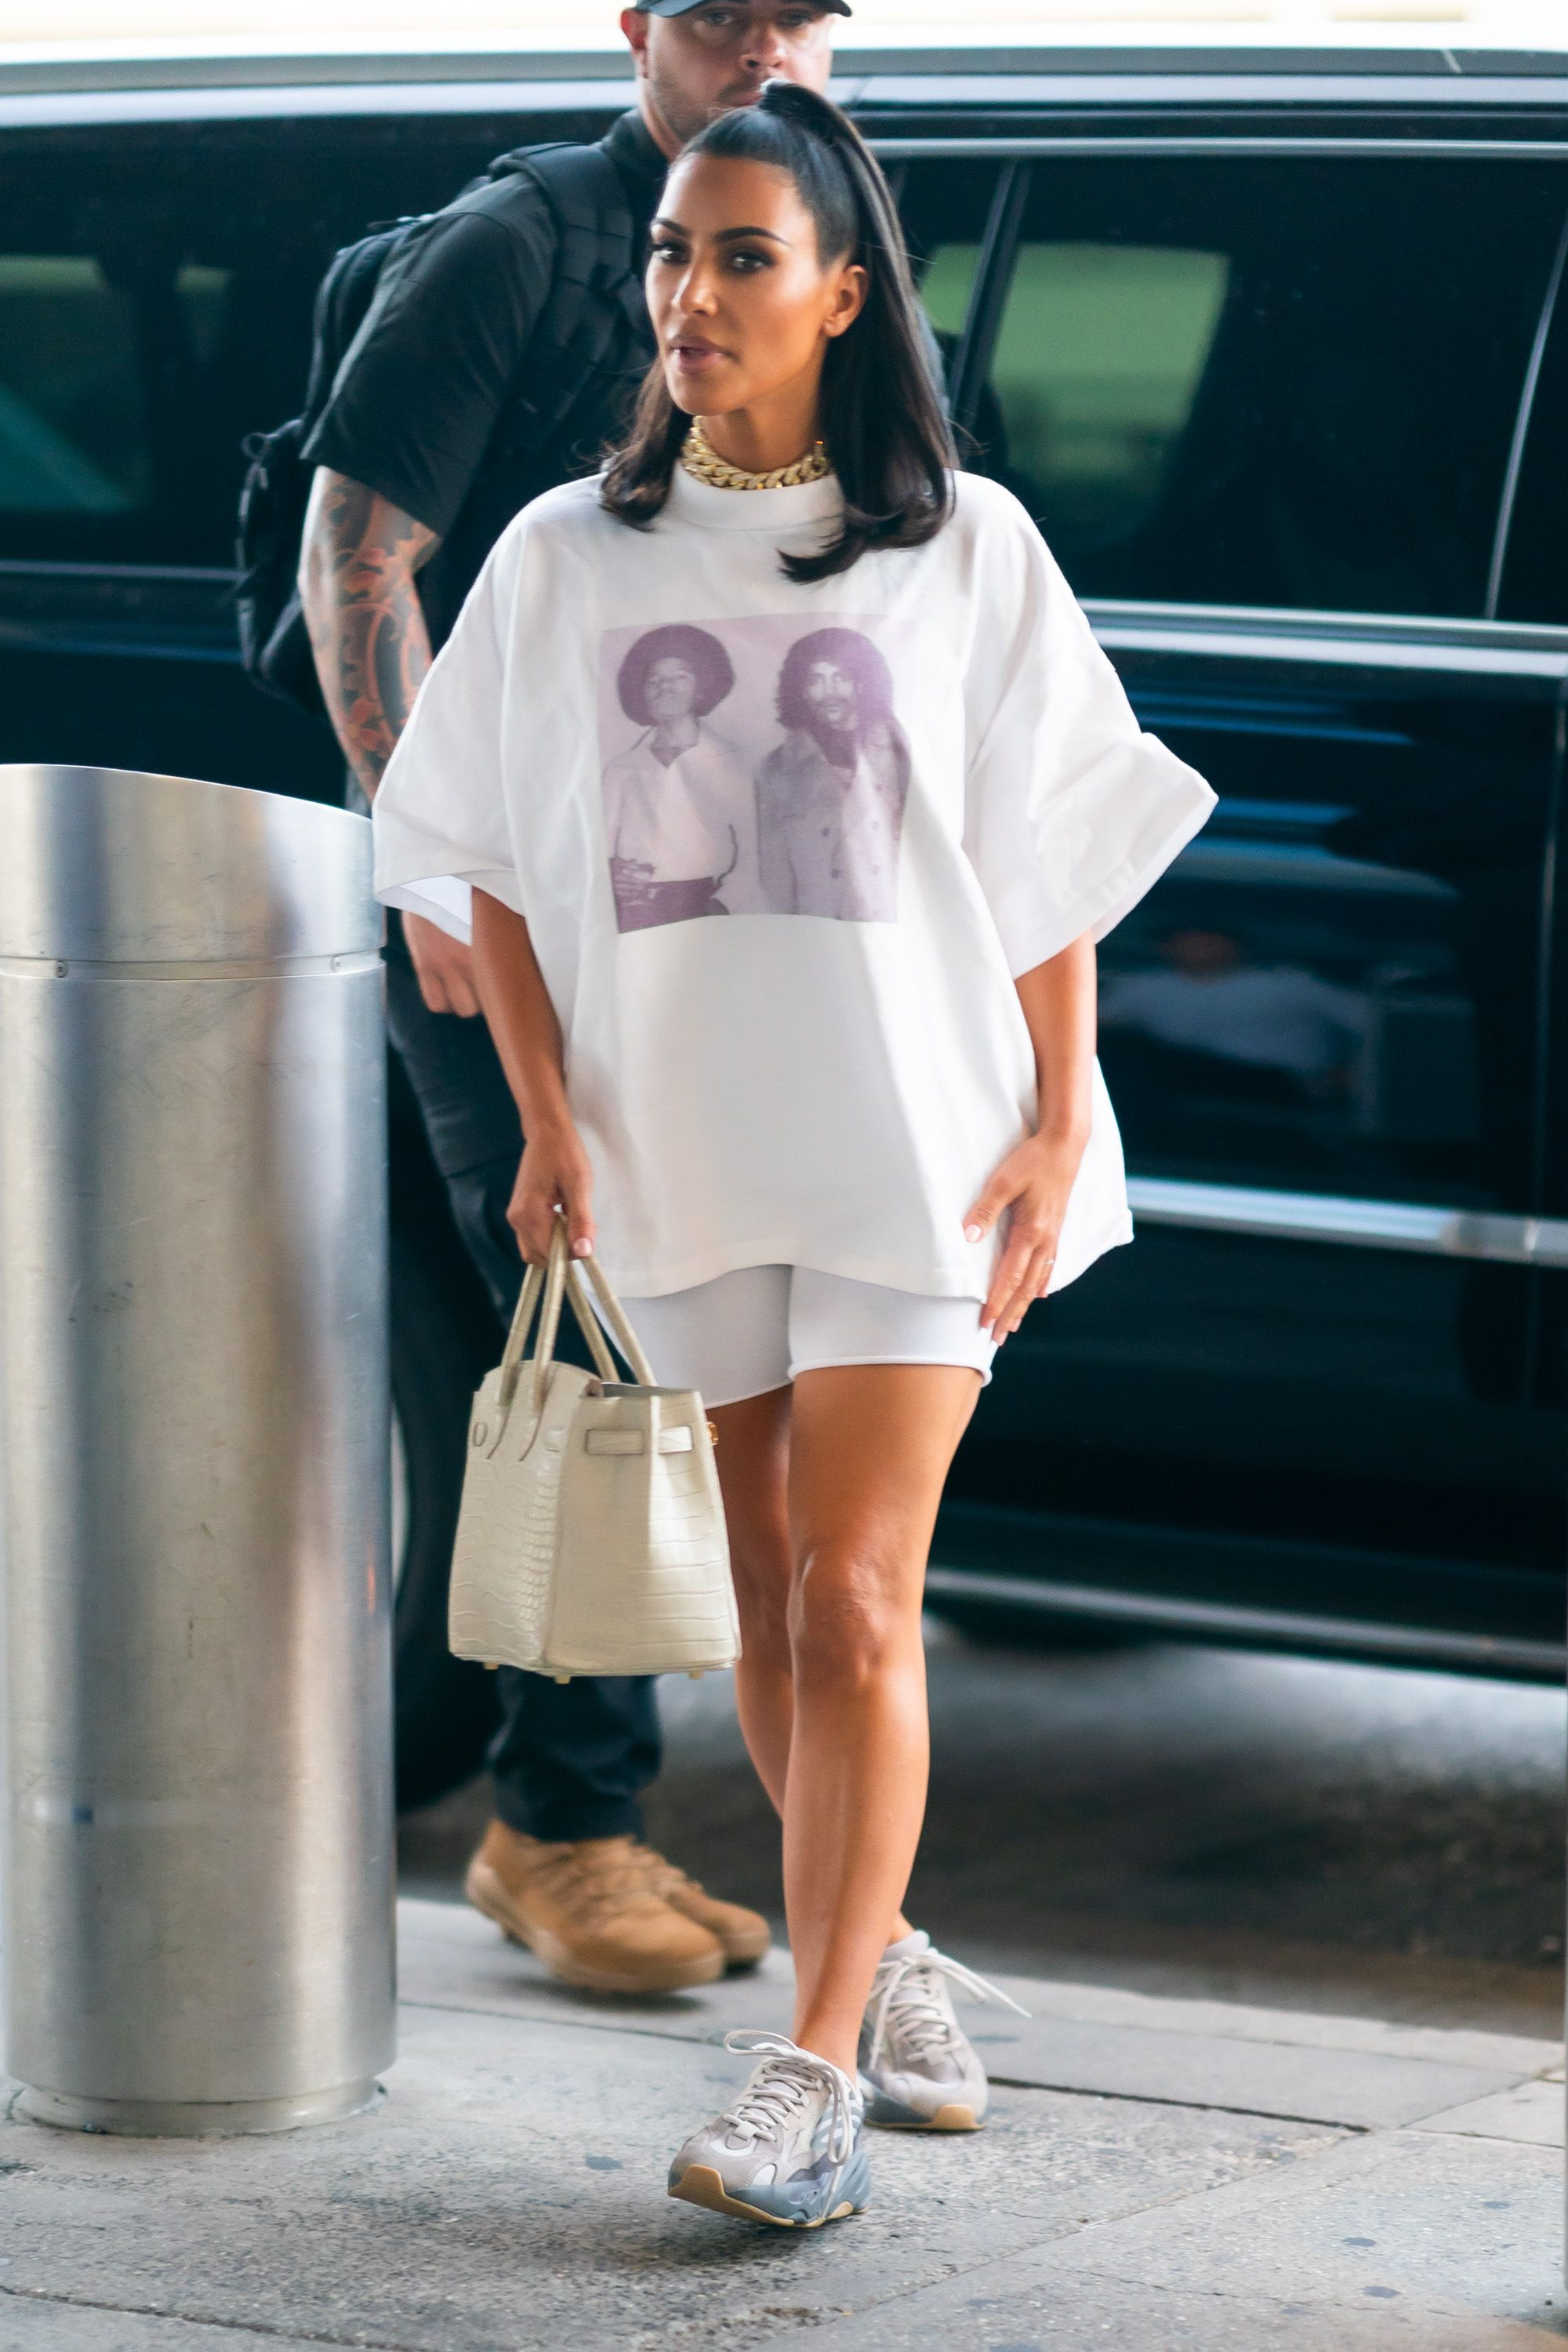 Take A Look At Kim Kardashian's Outfits For Your Summer Wardrobe